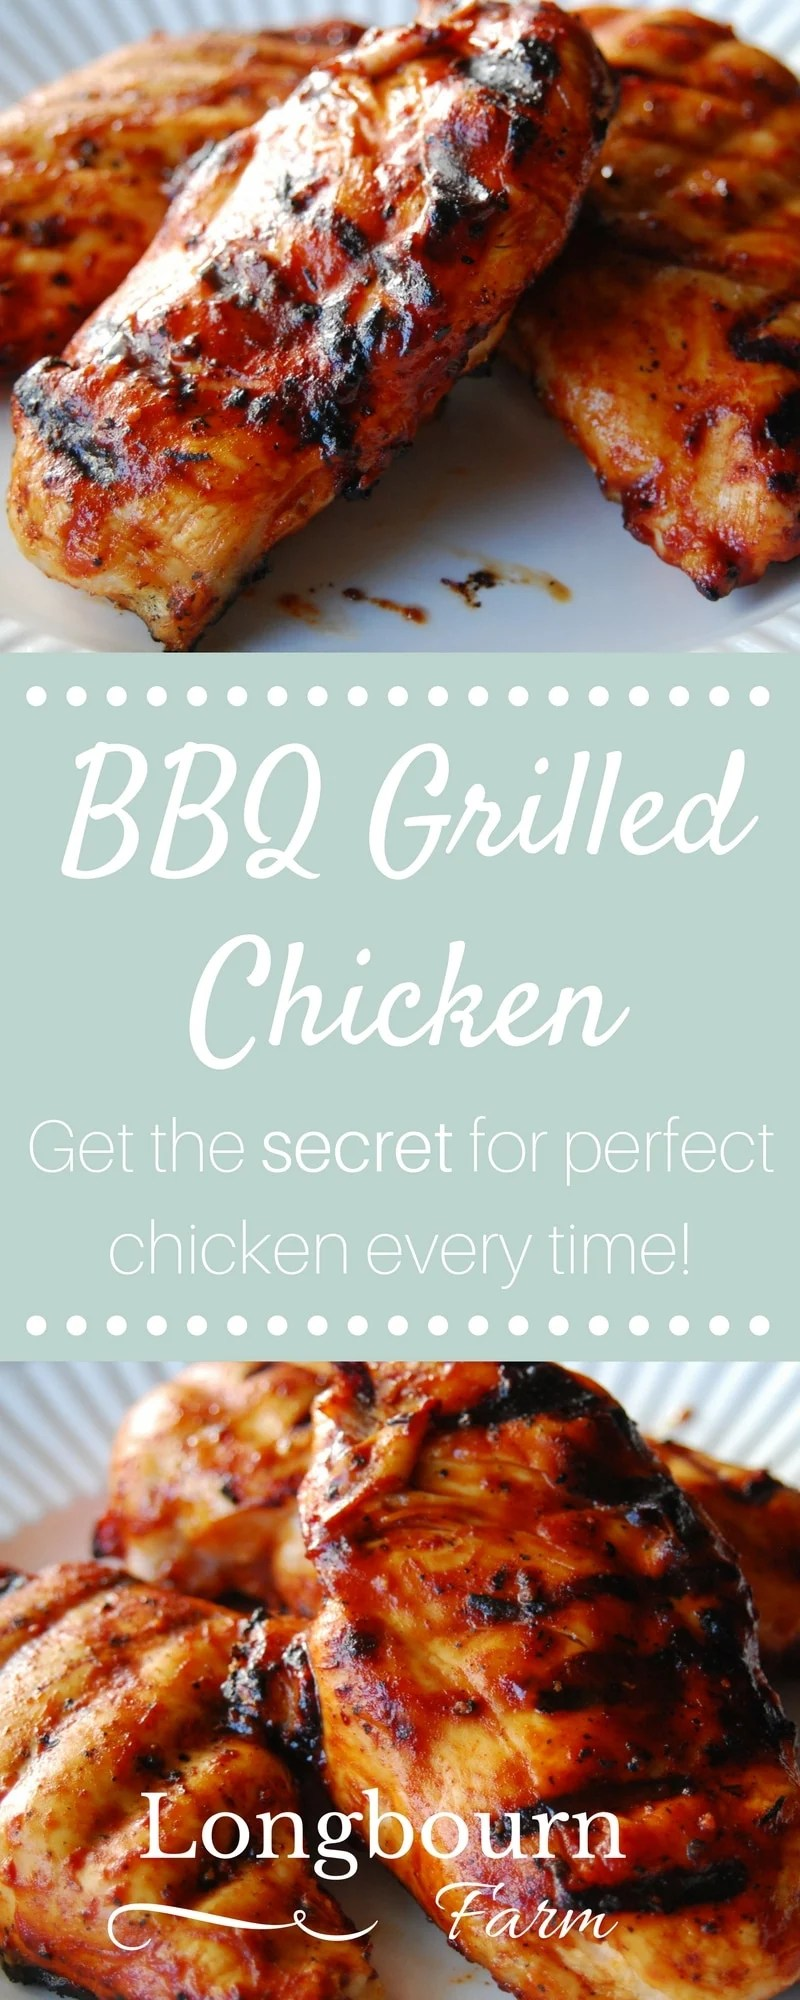 Find out the secret for how to make tender and juicy grilled BBQ chicken! No long brining steps, just a simple grilling method for perfect BBQ chicken.